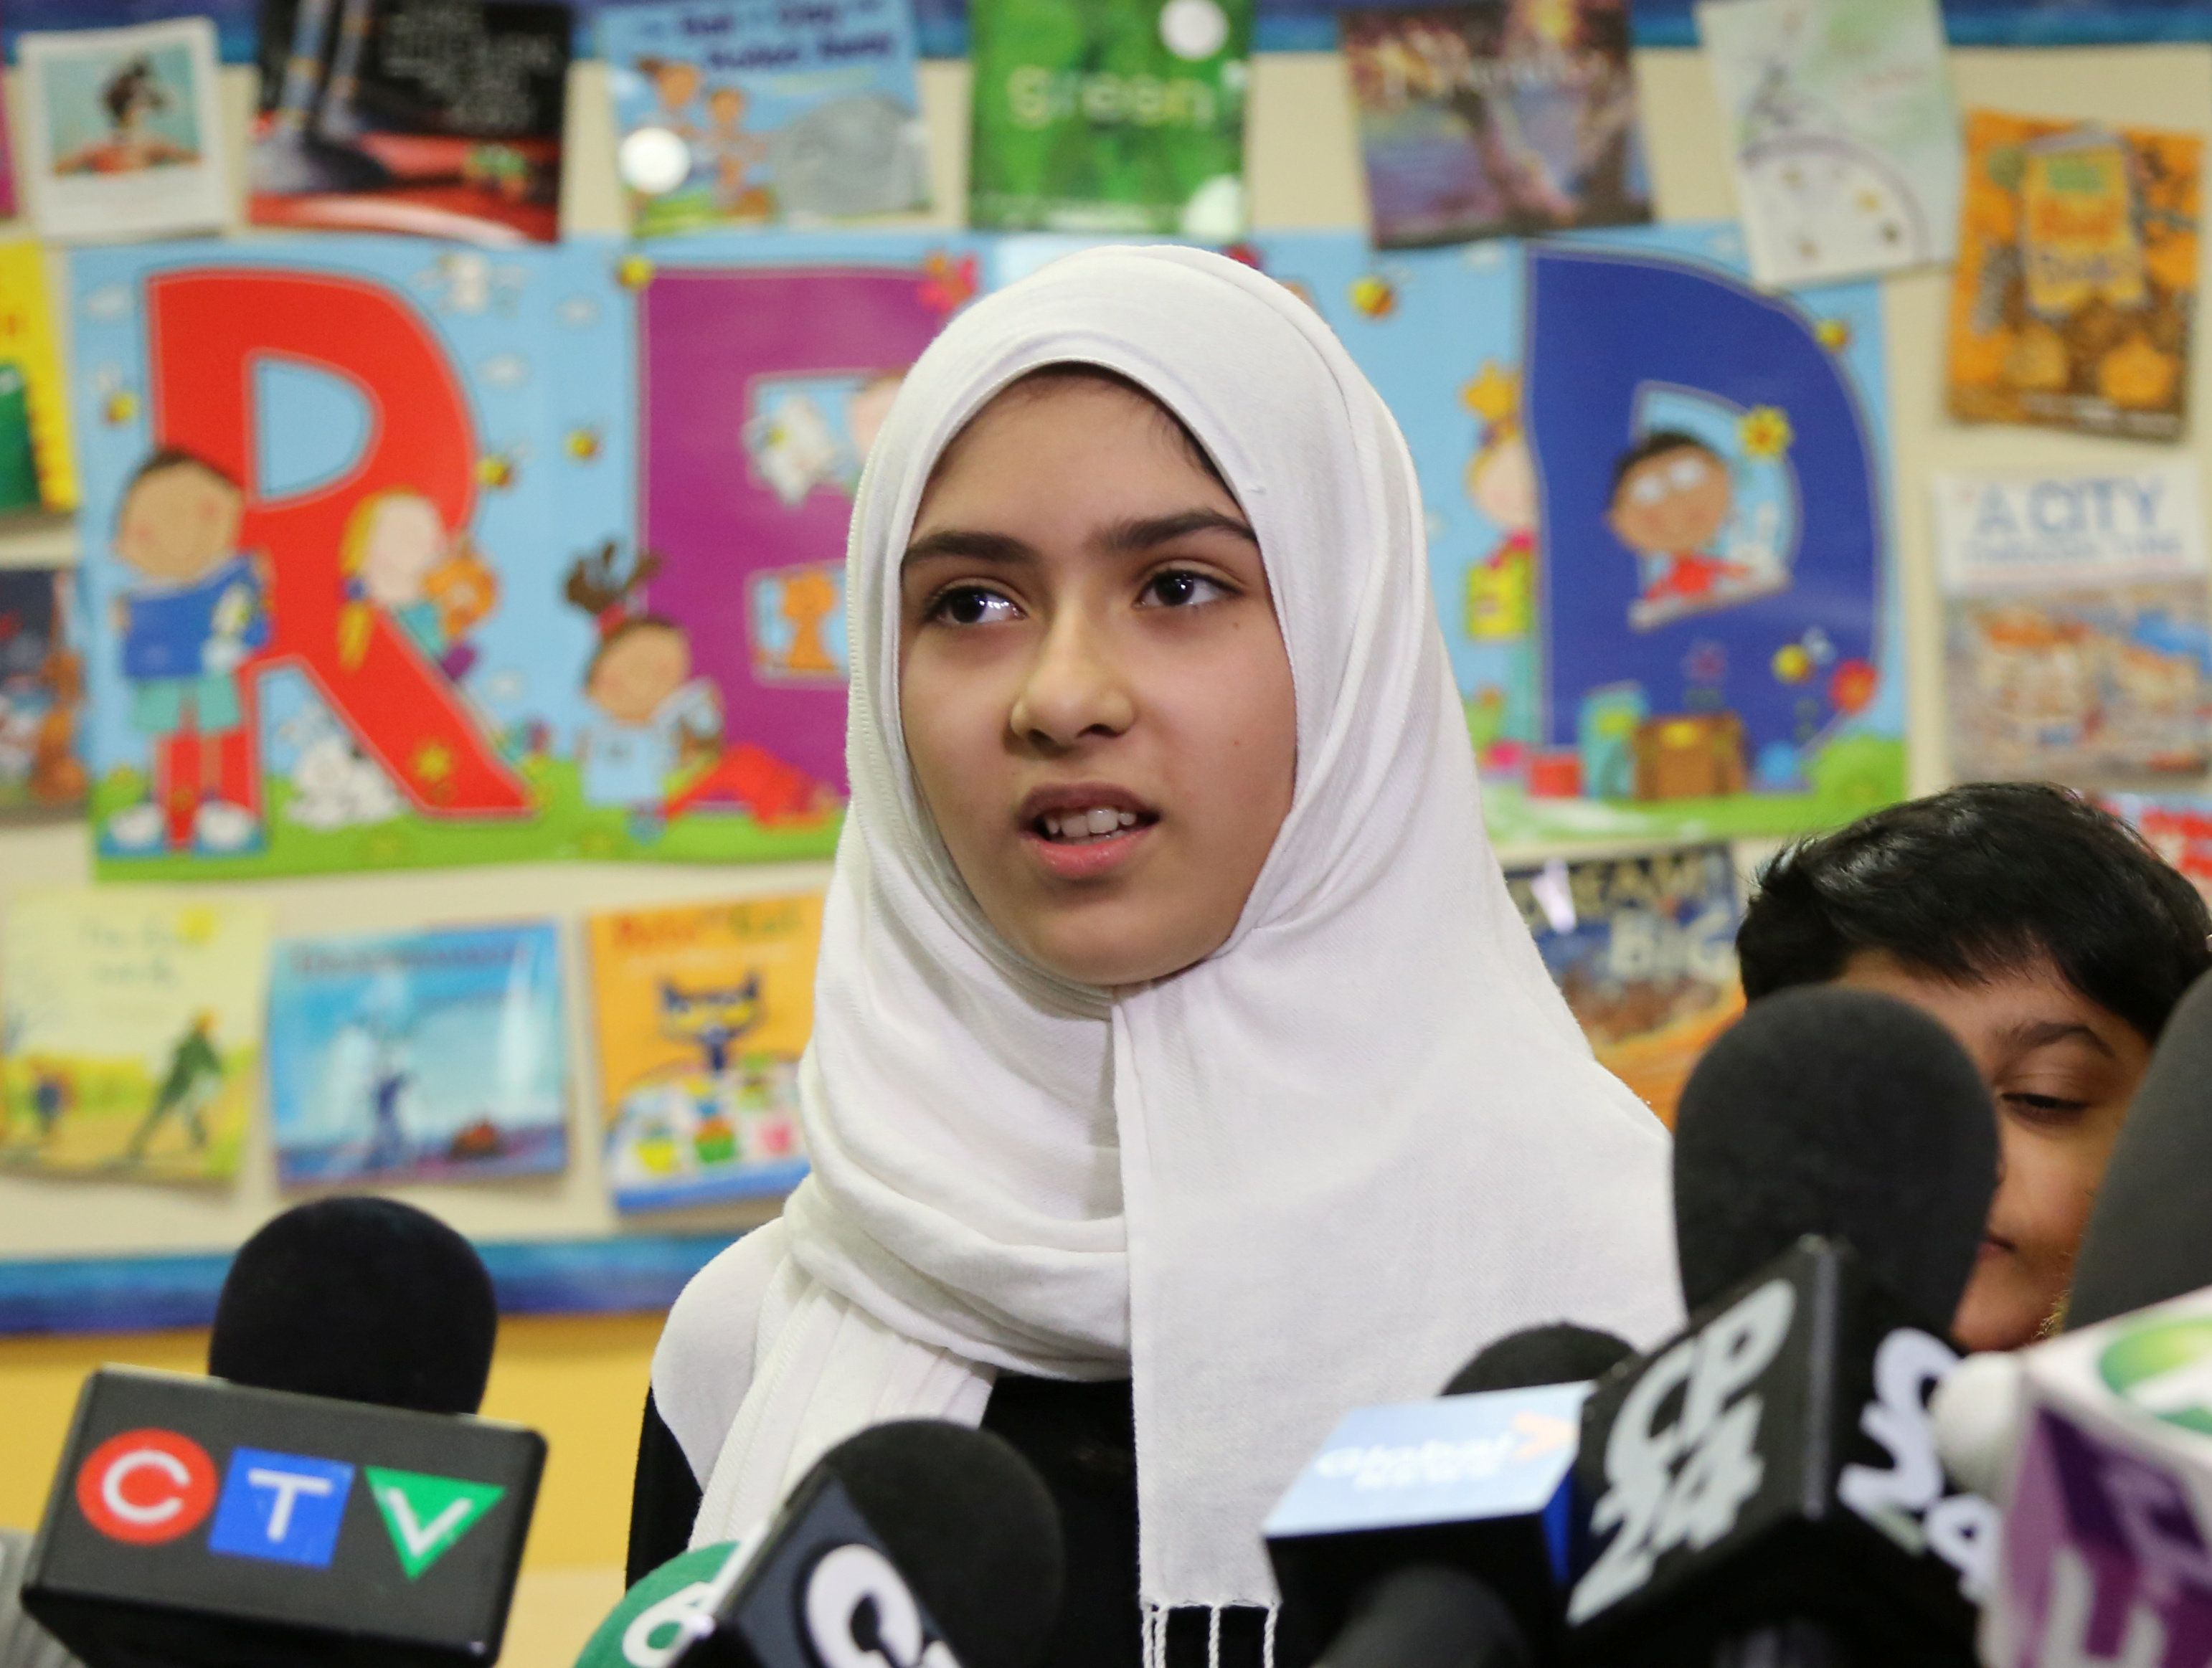 Khawlah Noman, 11, speaks to reporters at Pauline Johnson Junior Public School, after she told police that a man cut her hijab with scissors in Toronto, Ontario, Canada January 12, 2018. REUTERS/Chris Helgren